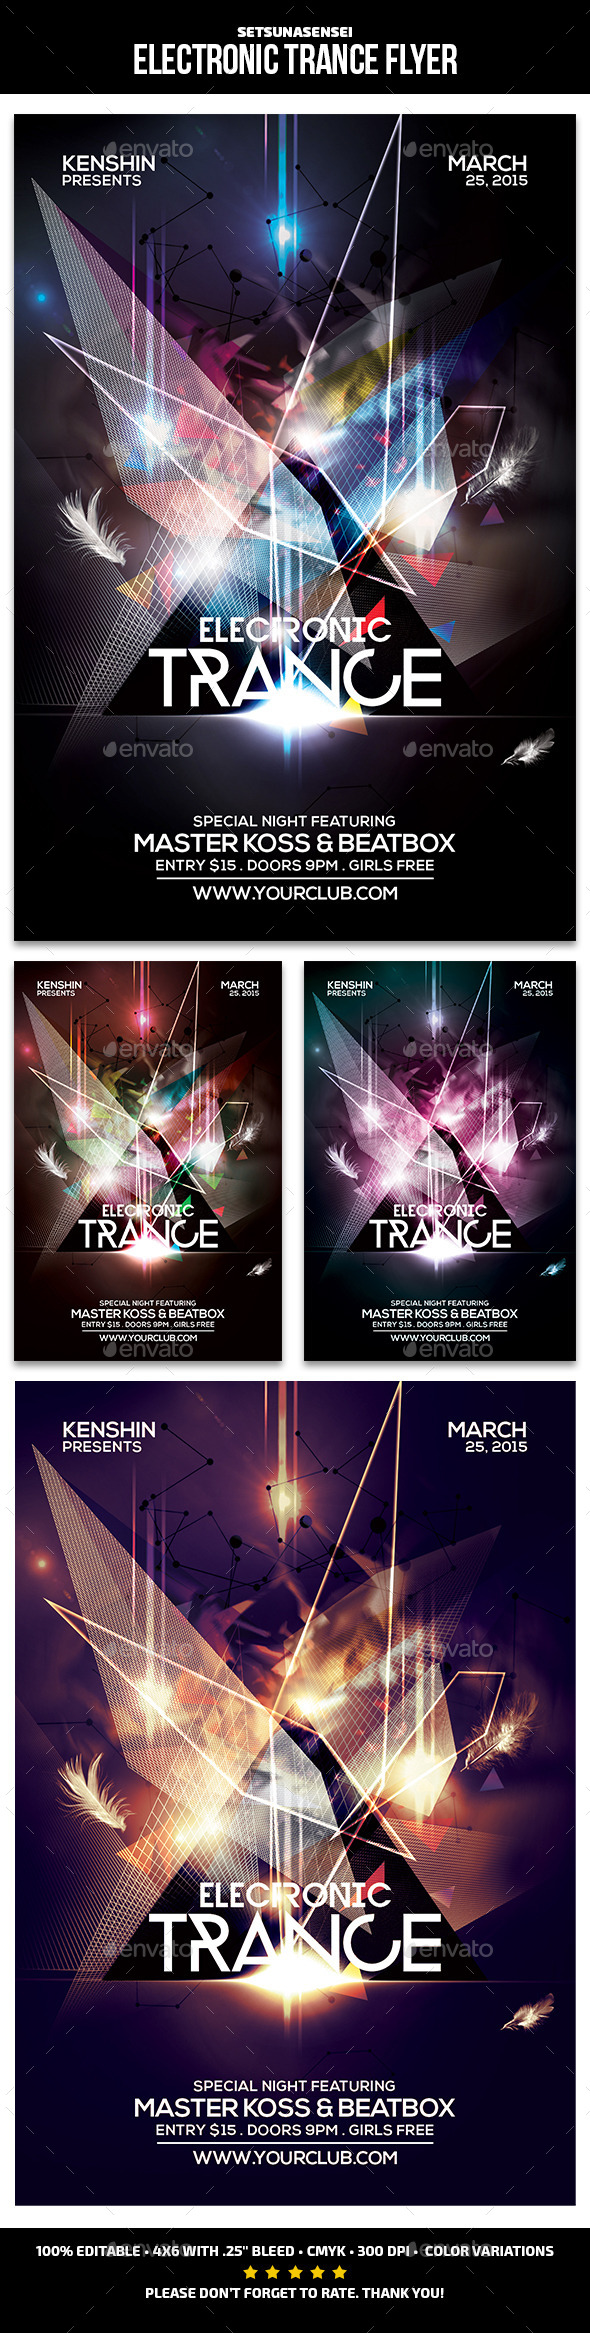 GraphicRiver Electronic Trance Flyer 9755419